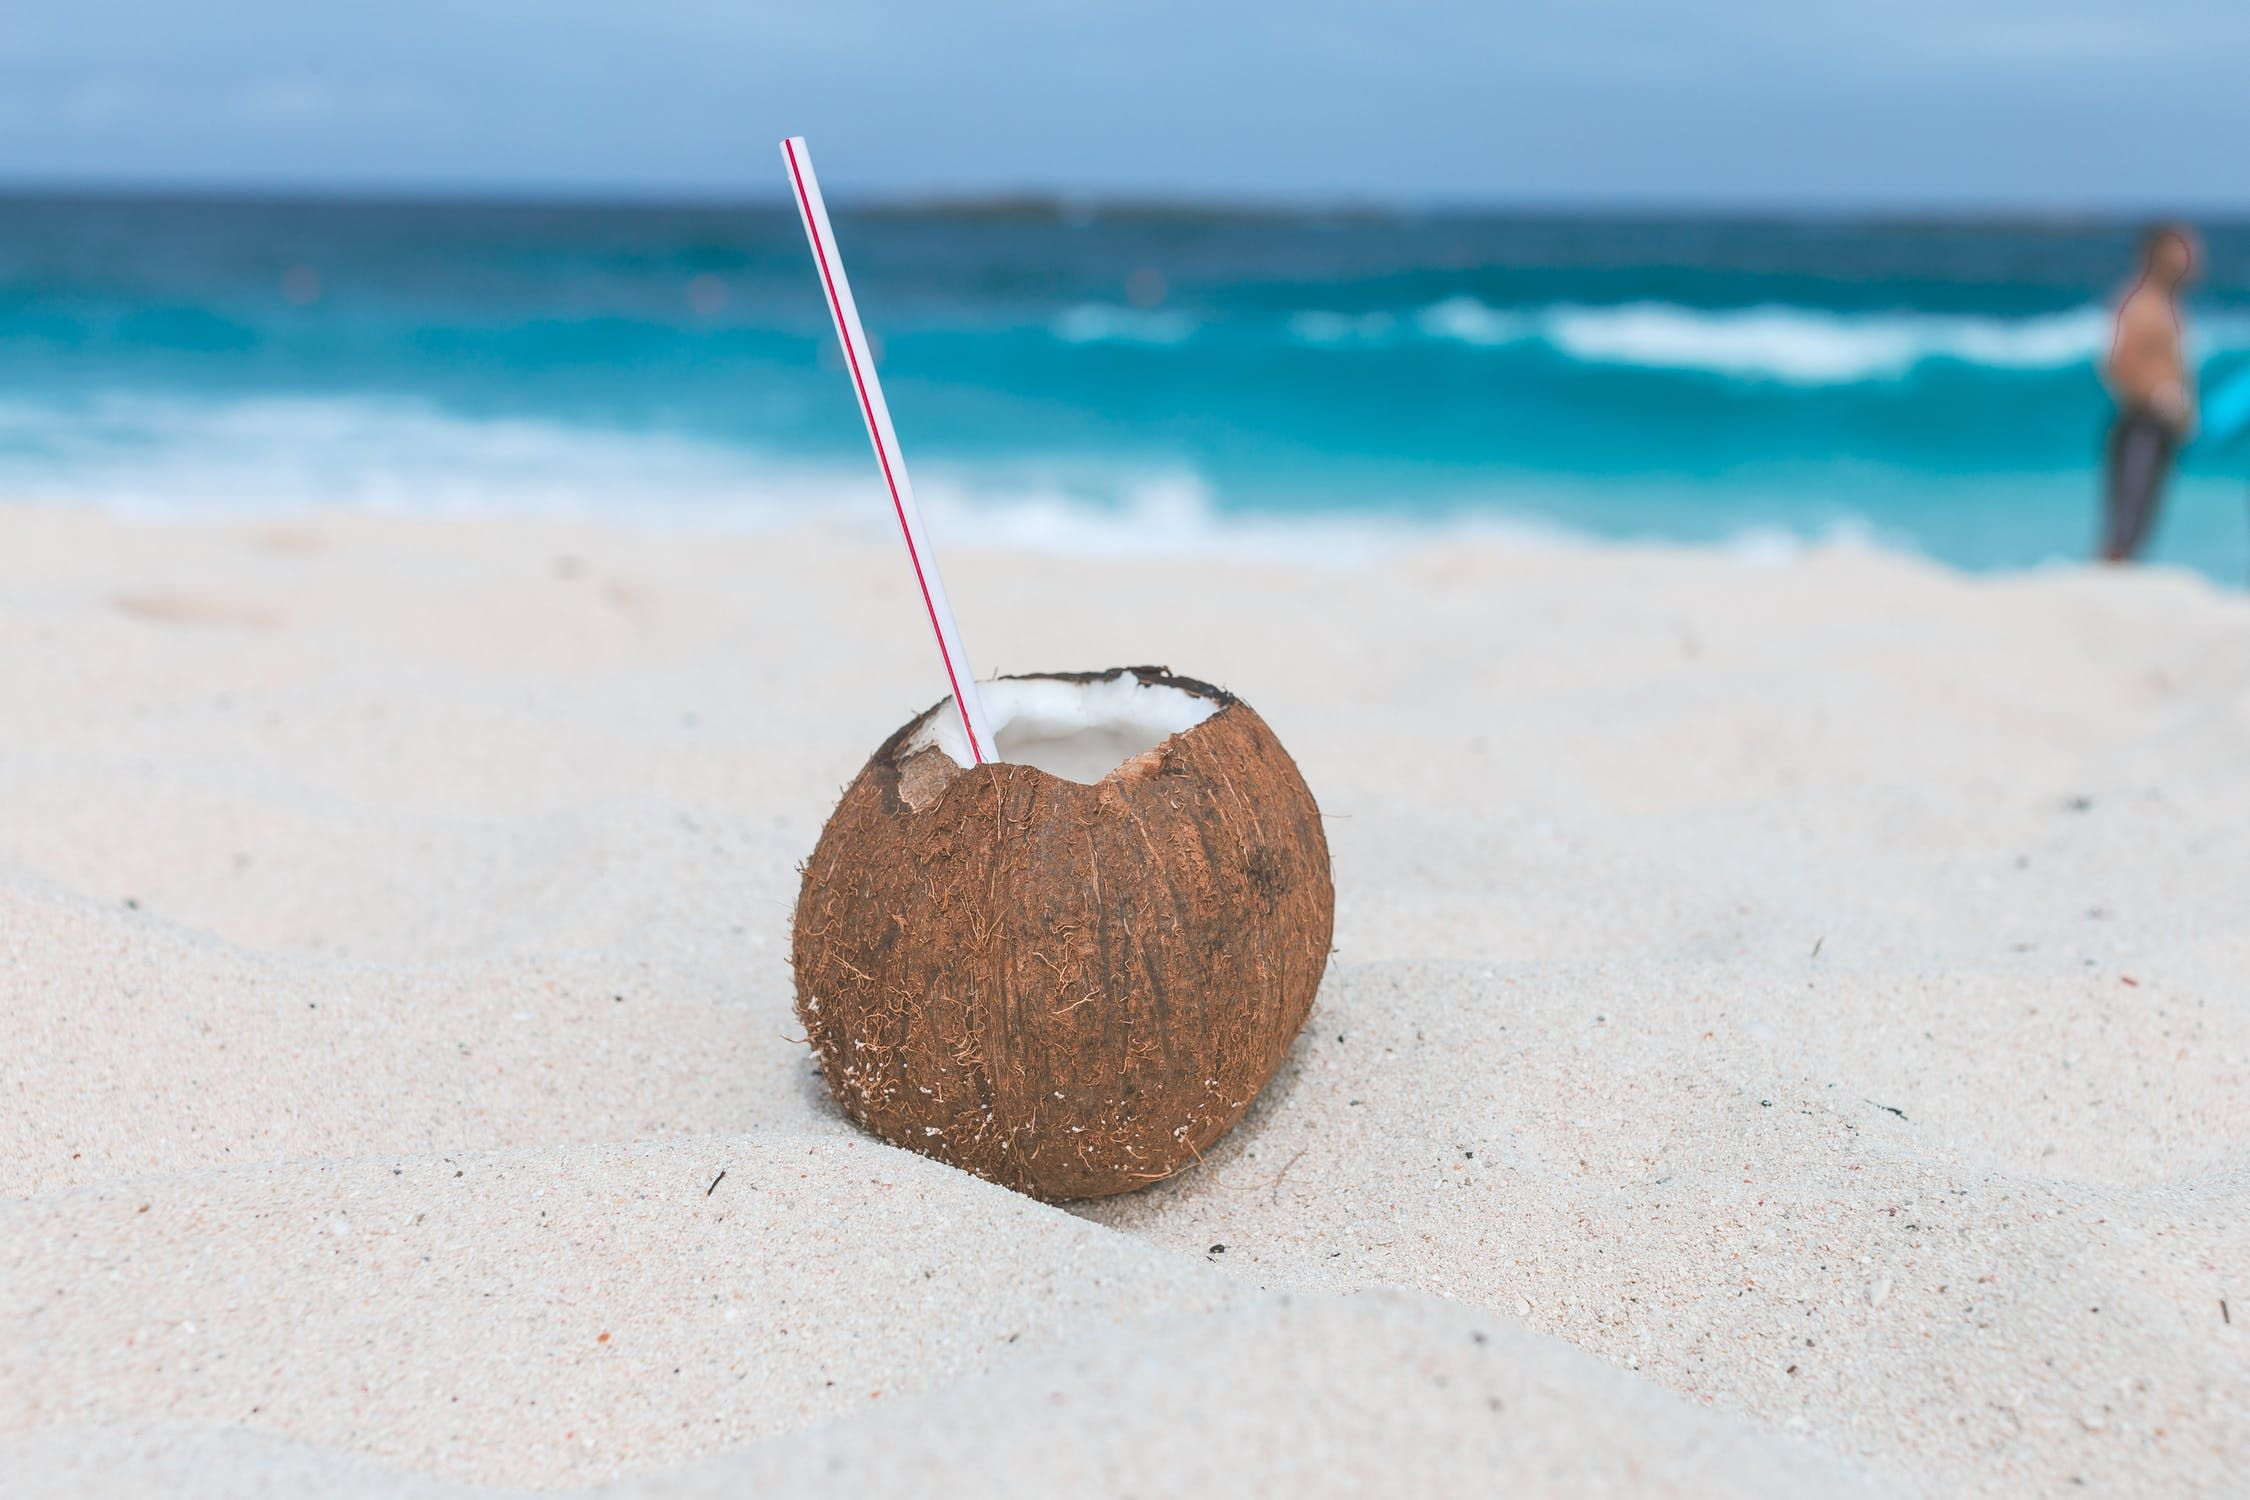 A brown coconut with a straw on the beach